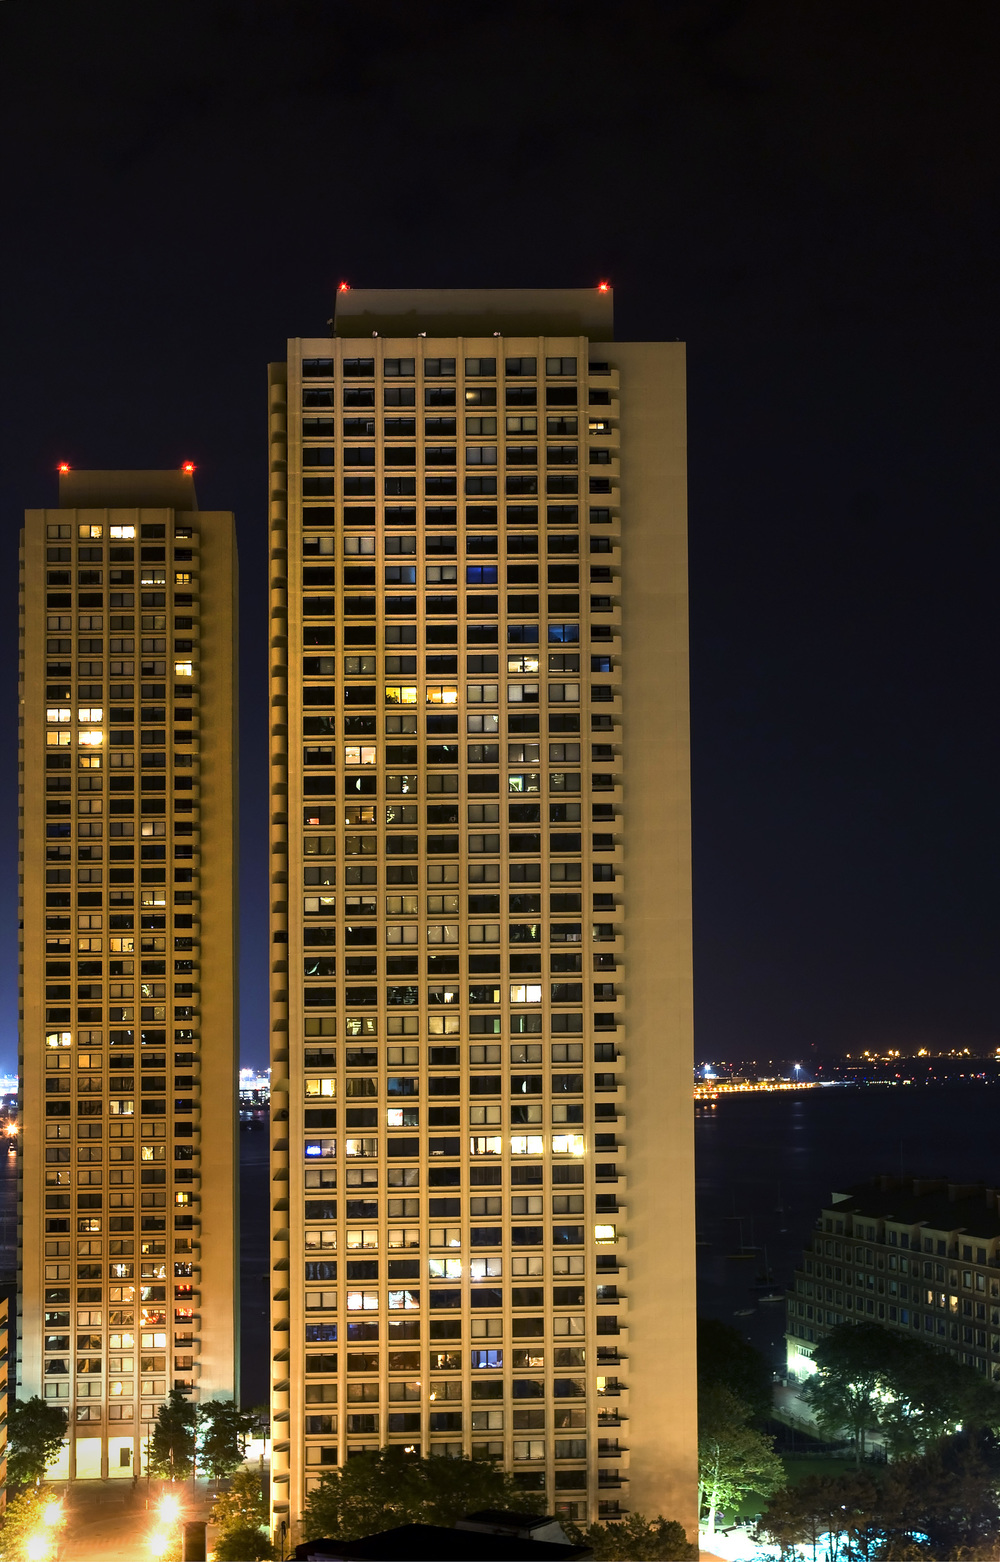 Designed by I.M. Pei in 1971, Boston's Harbor Towers have gone from being built as subsidized affordable housing to becoming one of Boston's most exclusive addresses.